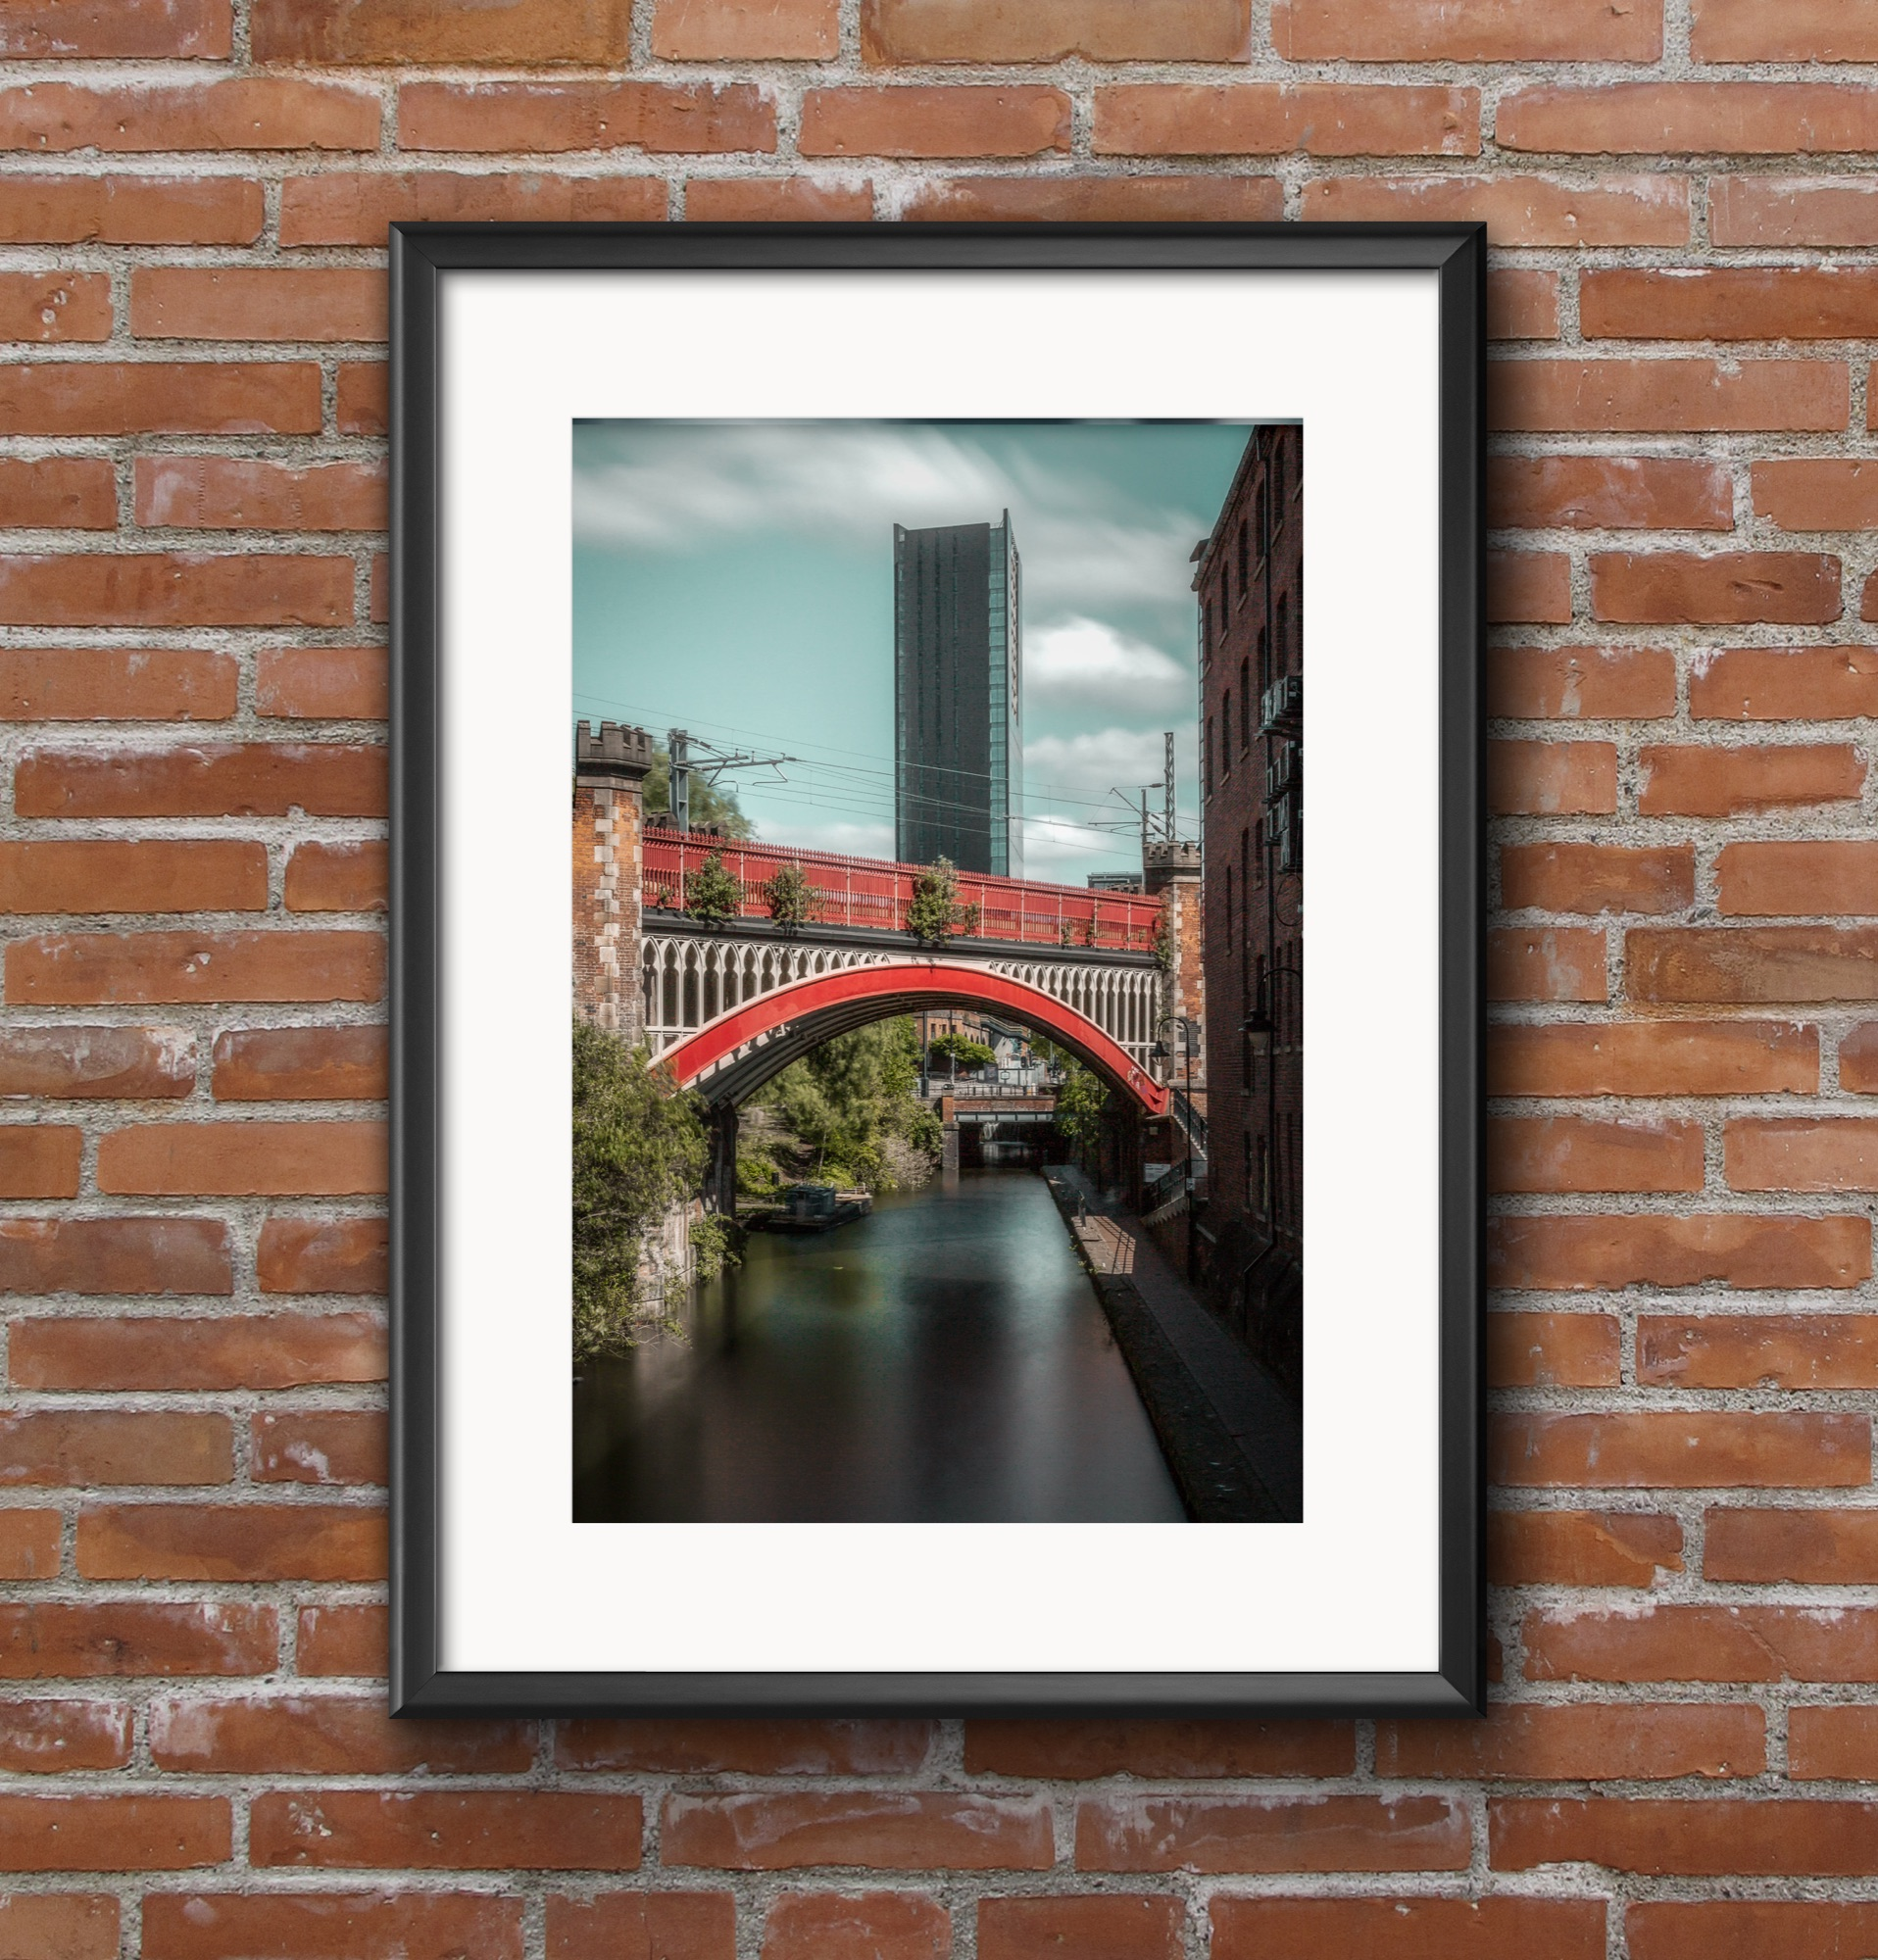 Manchester canal leading towards Beetham Tower.